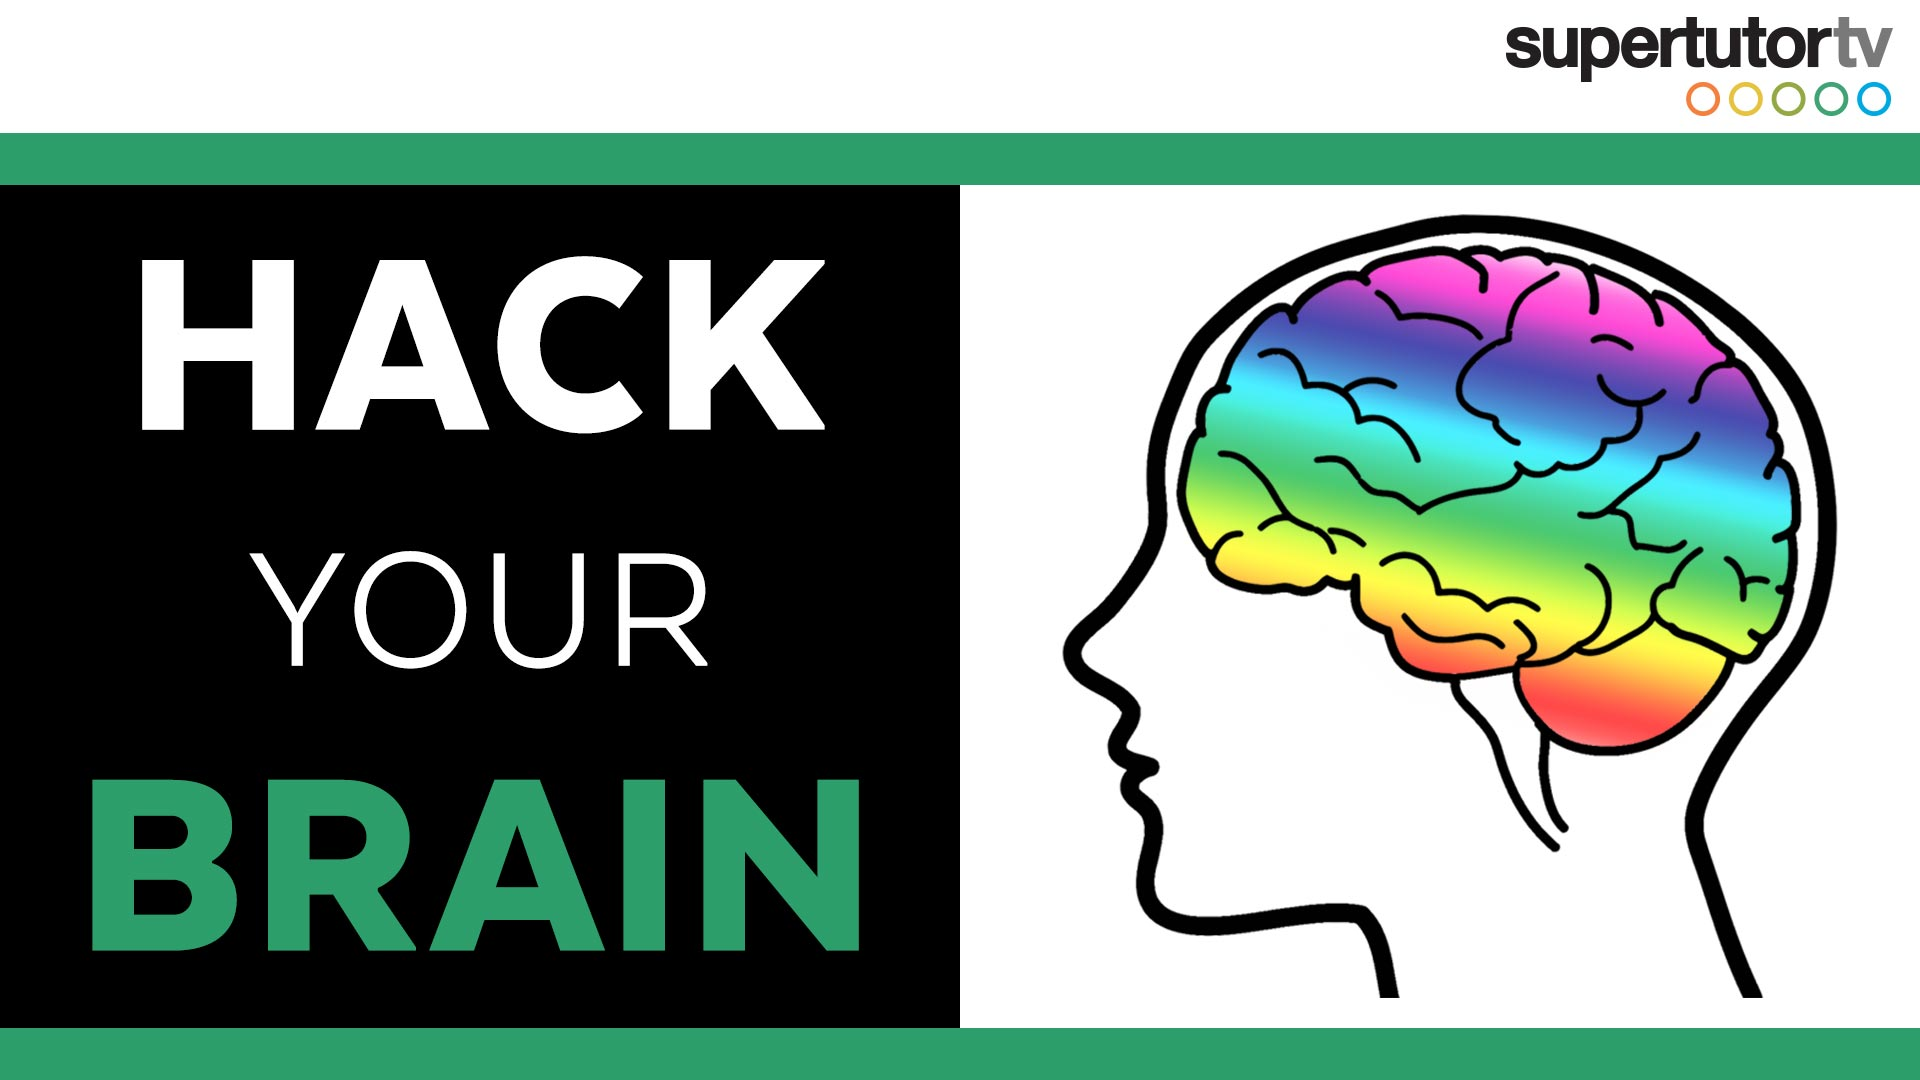 Hack Your Brain: 3 Study Tips Based on Psychology!